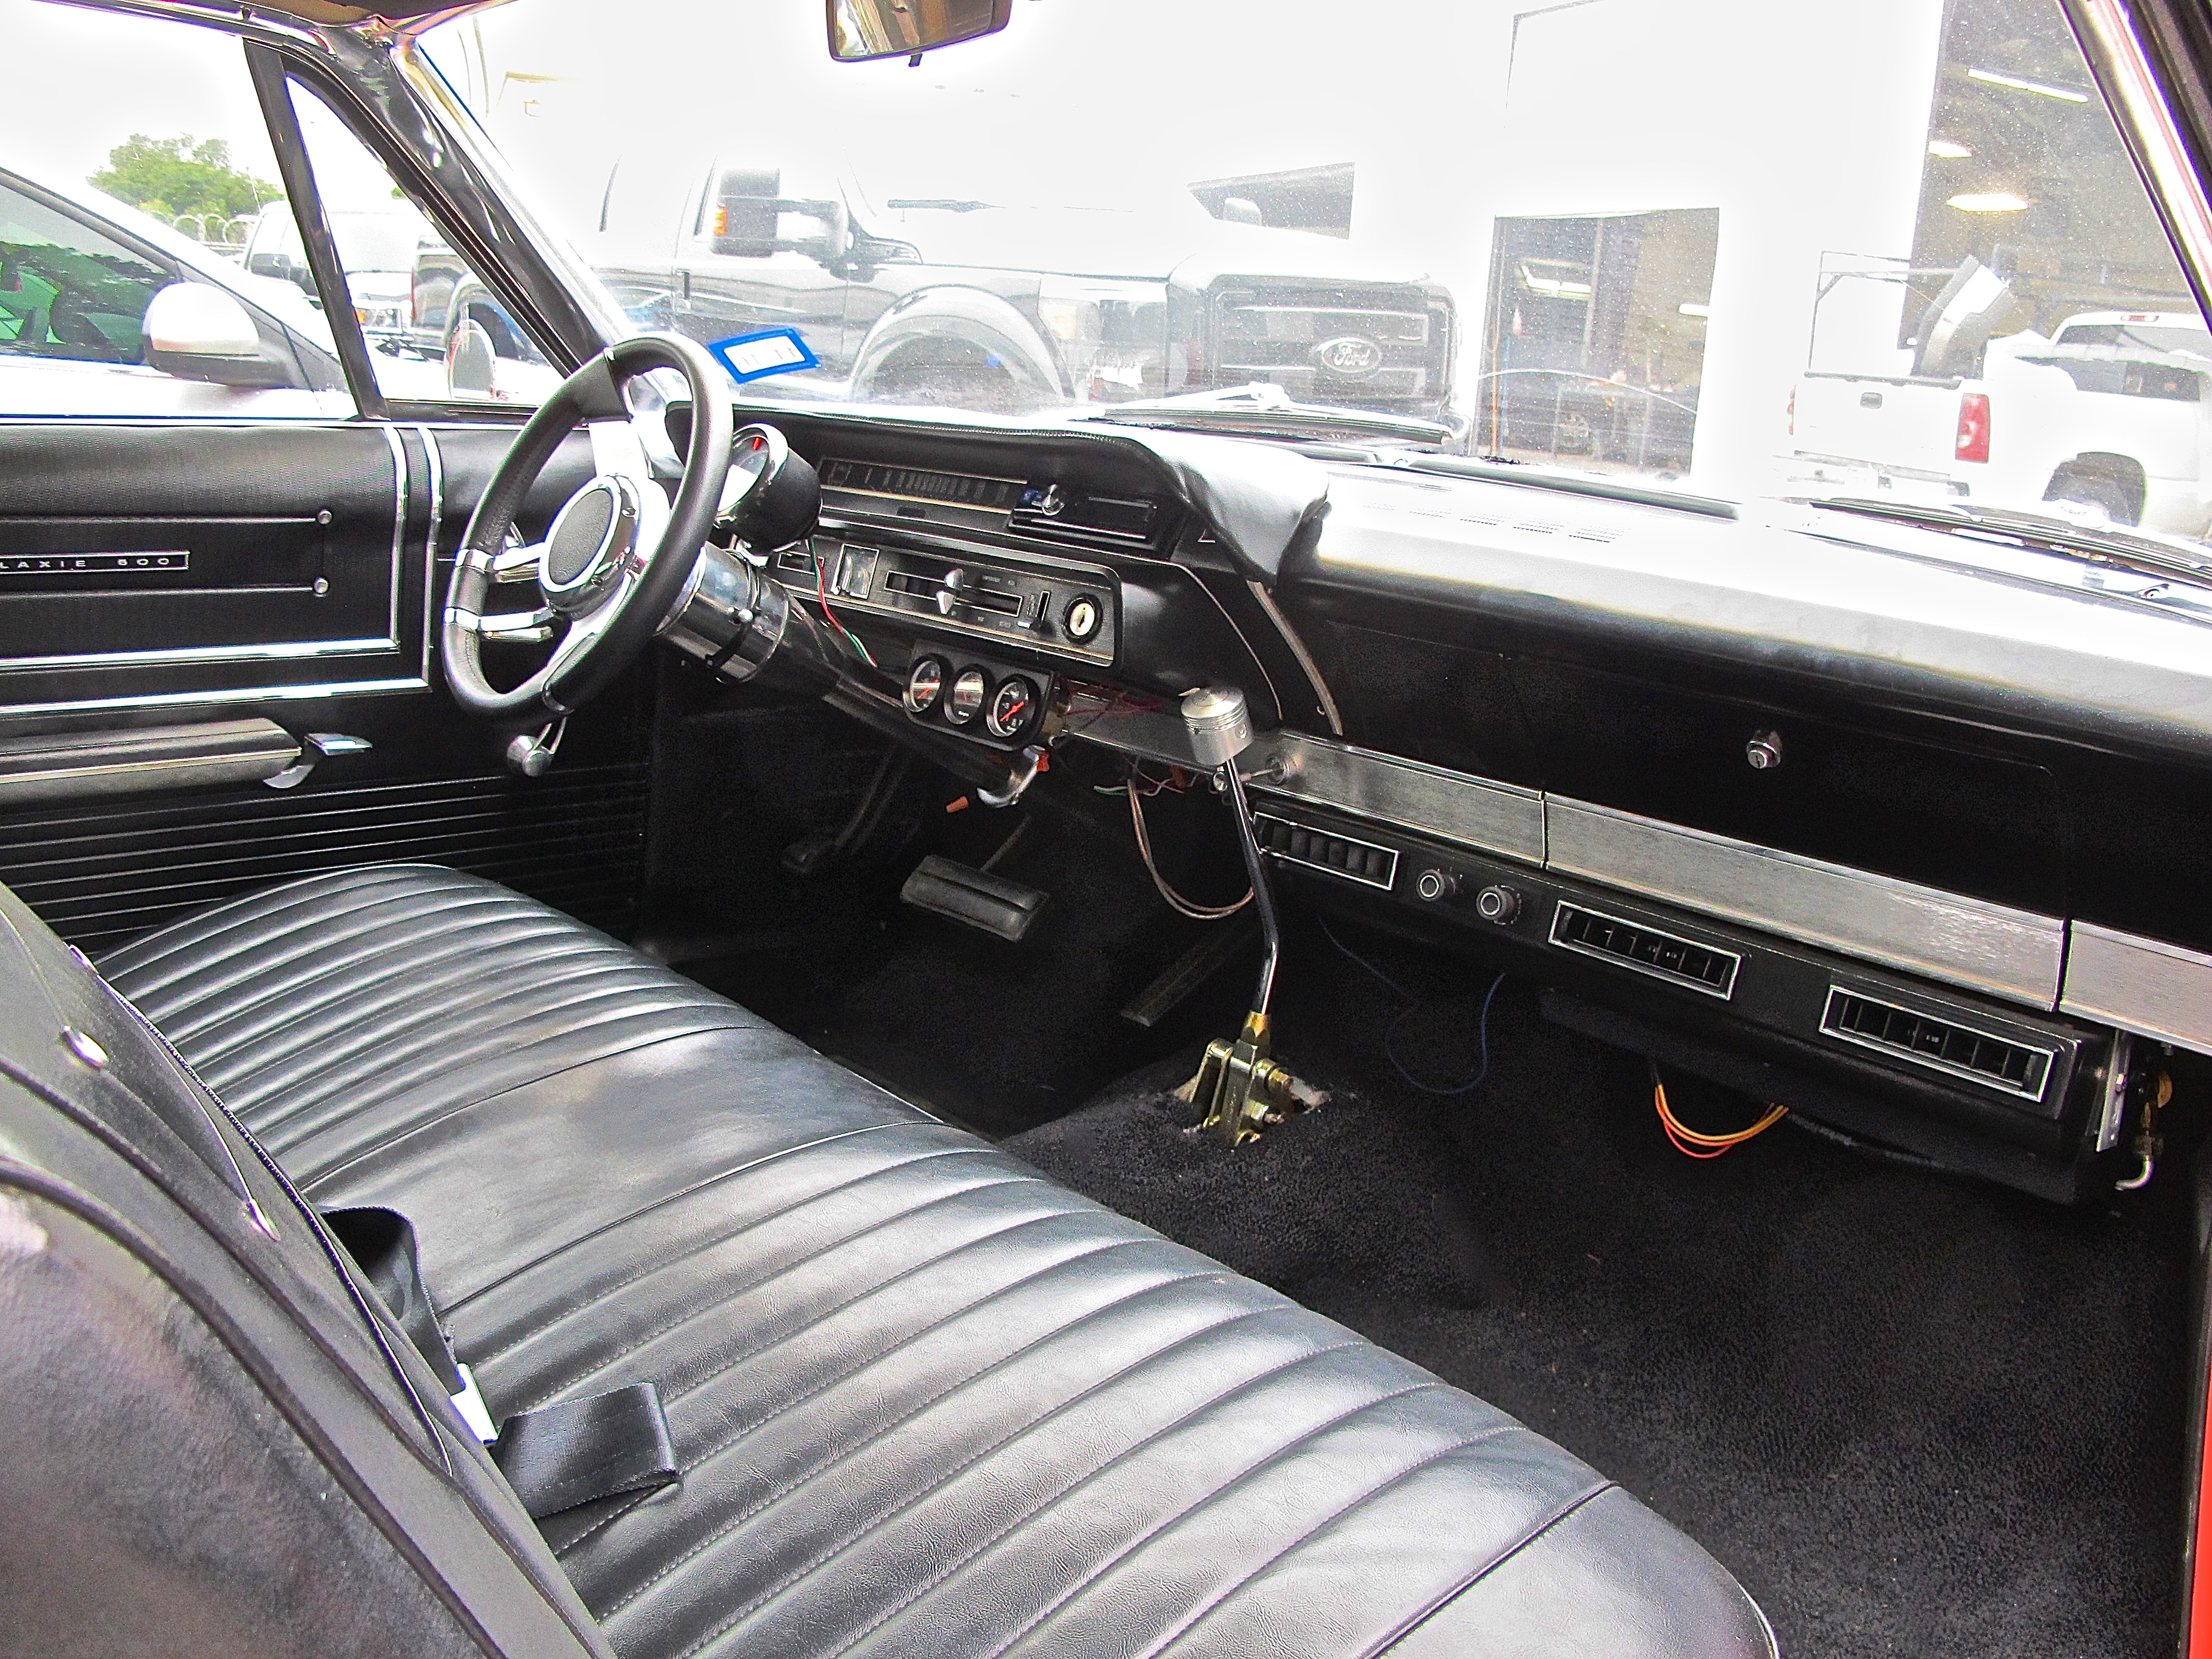 modified 1965 ford galaxie hardtop for sale in n austin - 1965 Ford Ranchero Interior